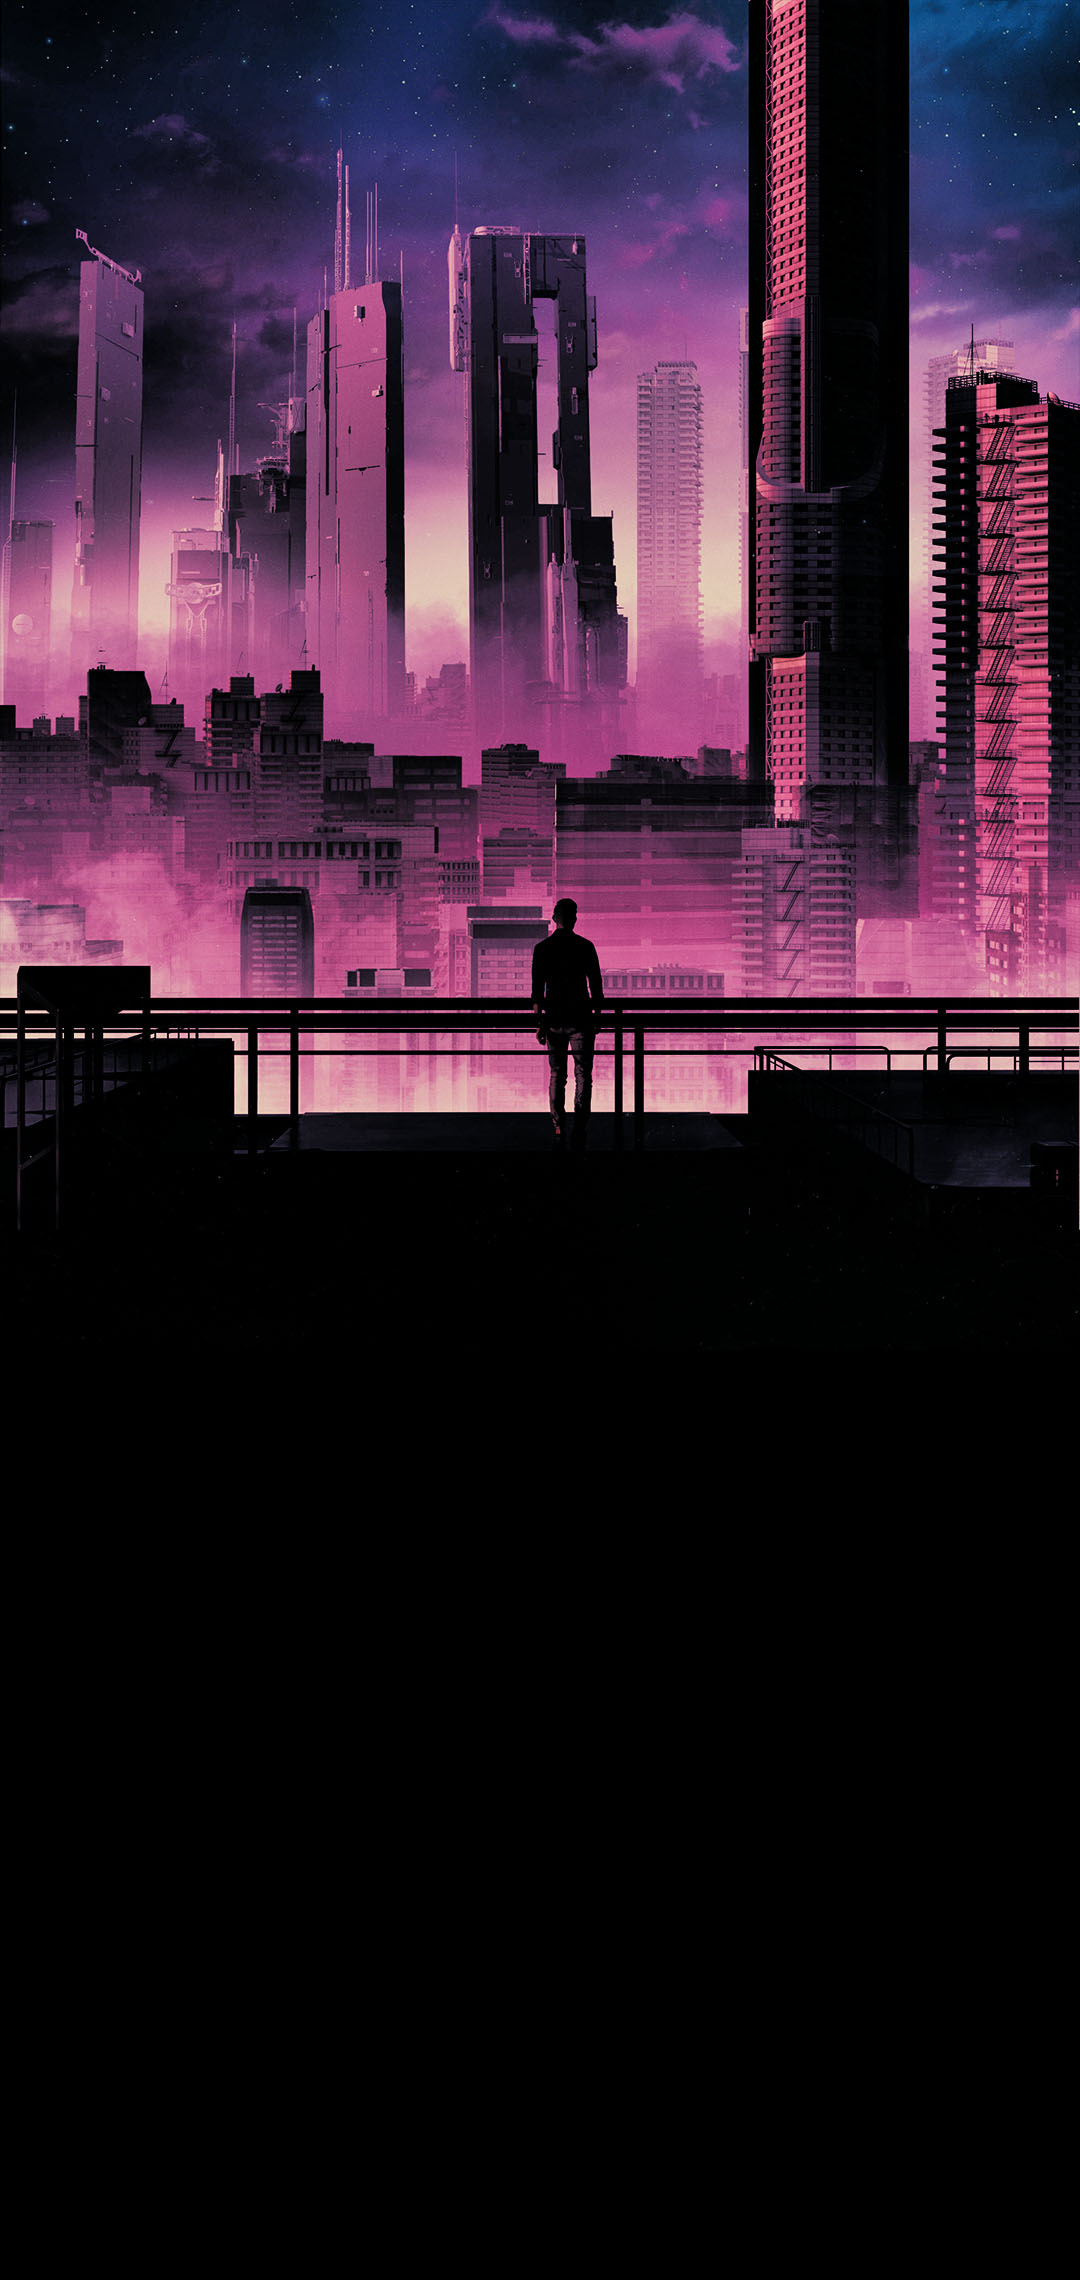 man silhouette and city background landscape phone wallpaper